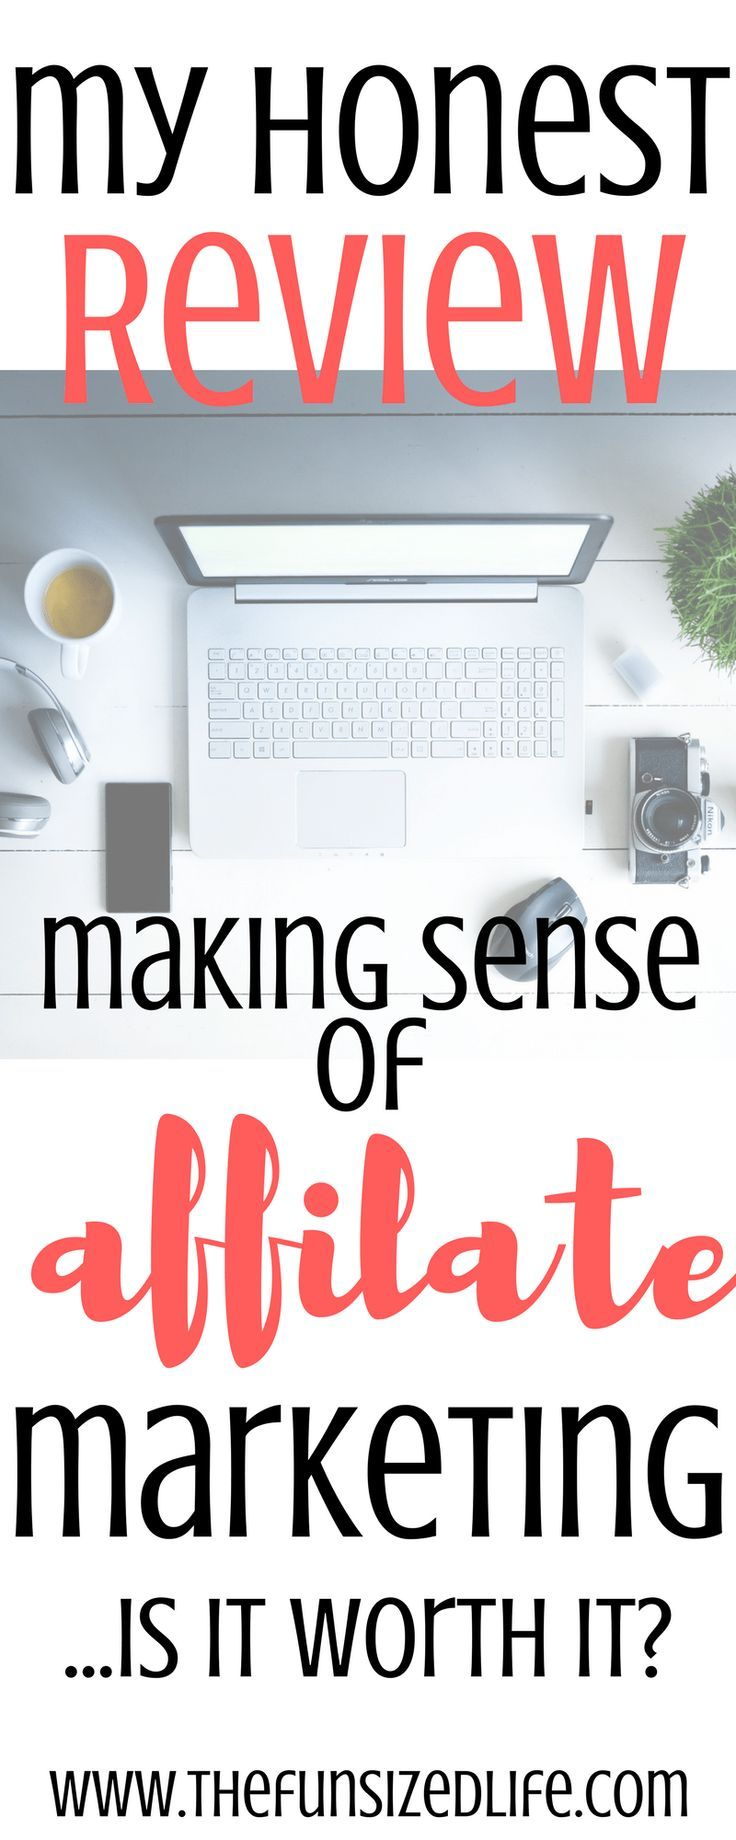 Does Making Sense of Affiliate Marketing live up to the hype? #review #affiliatemarketing